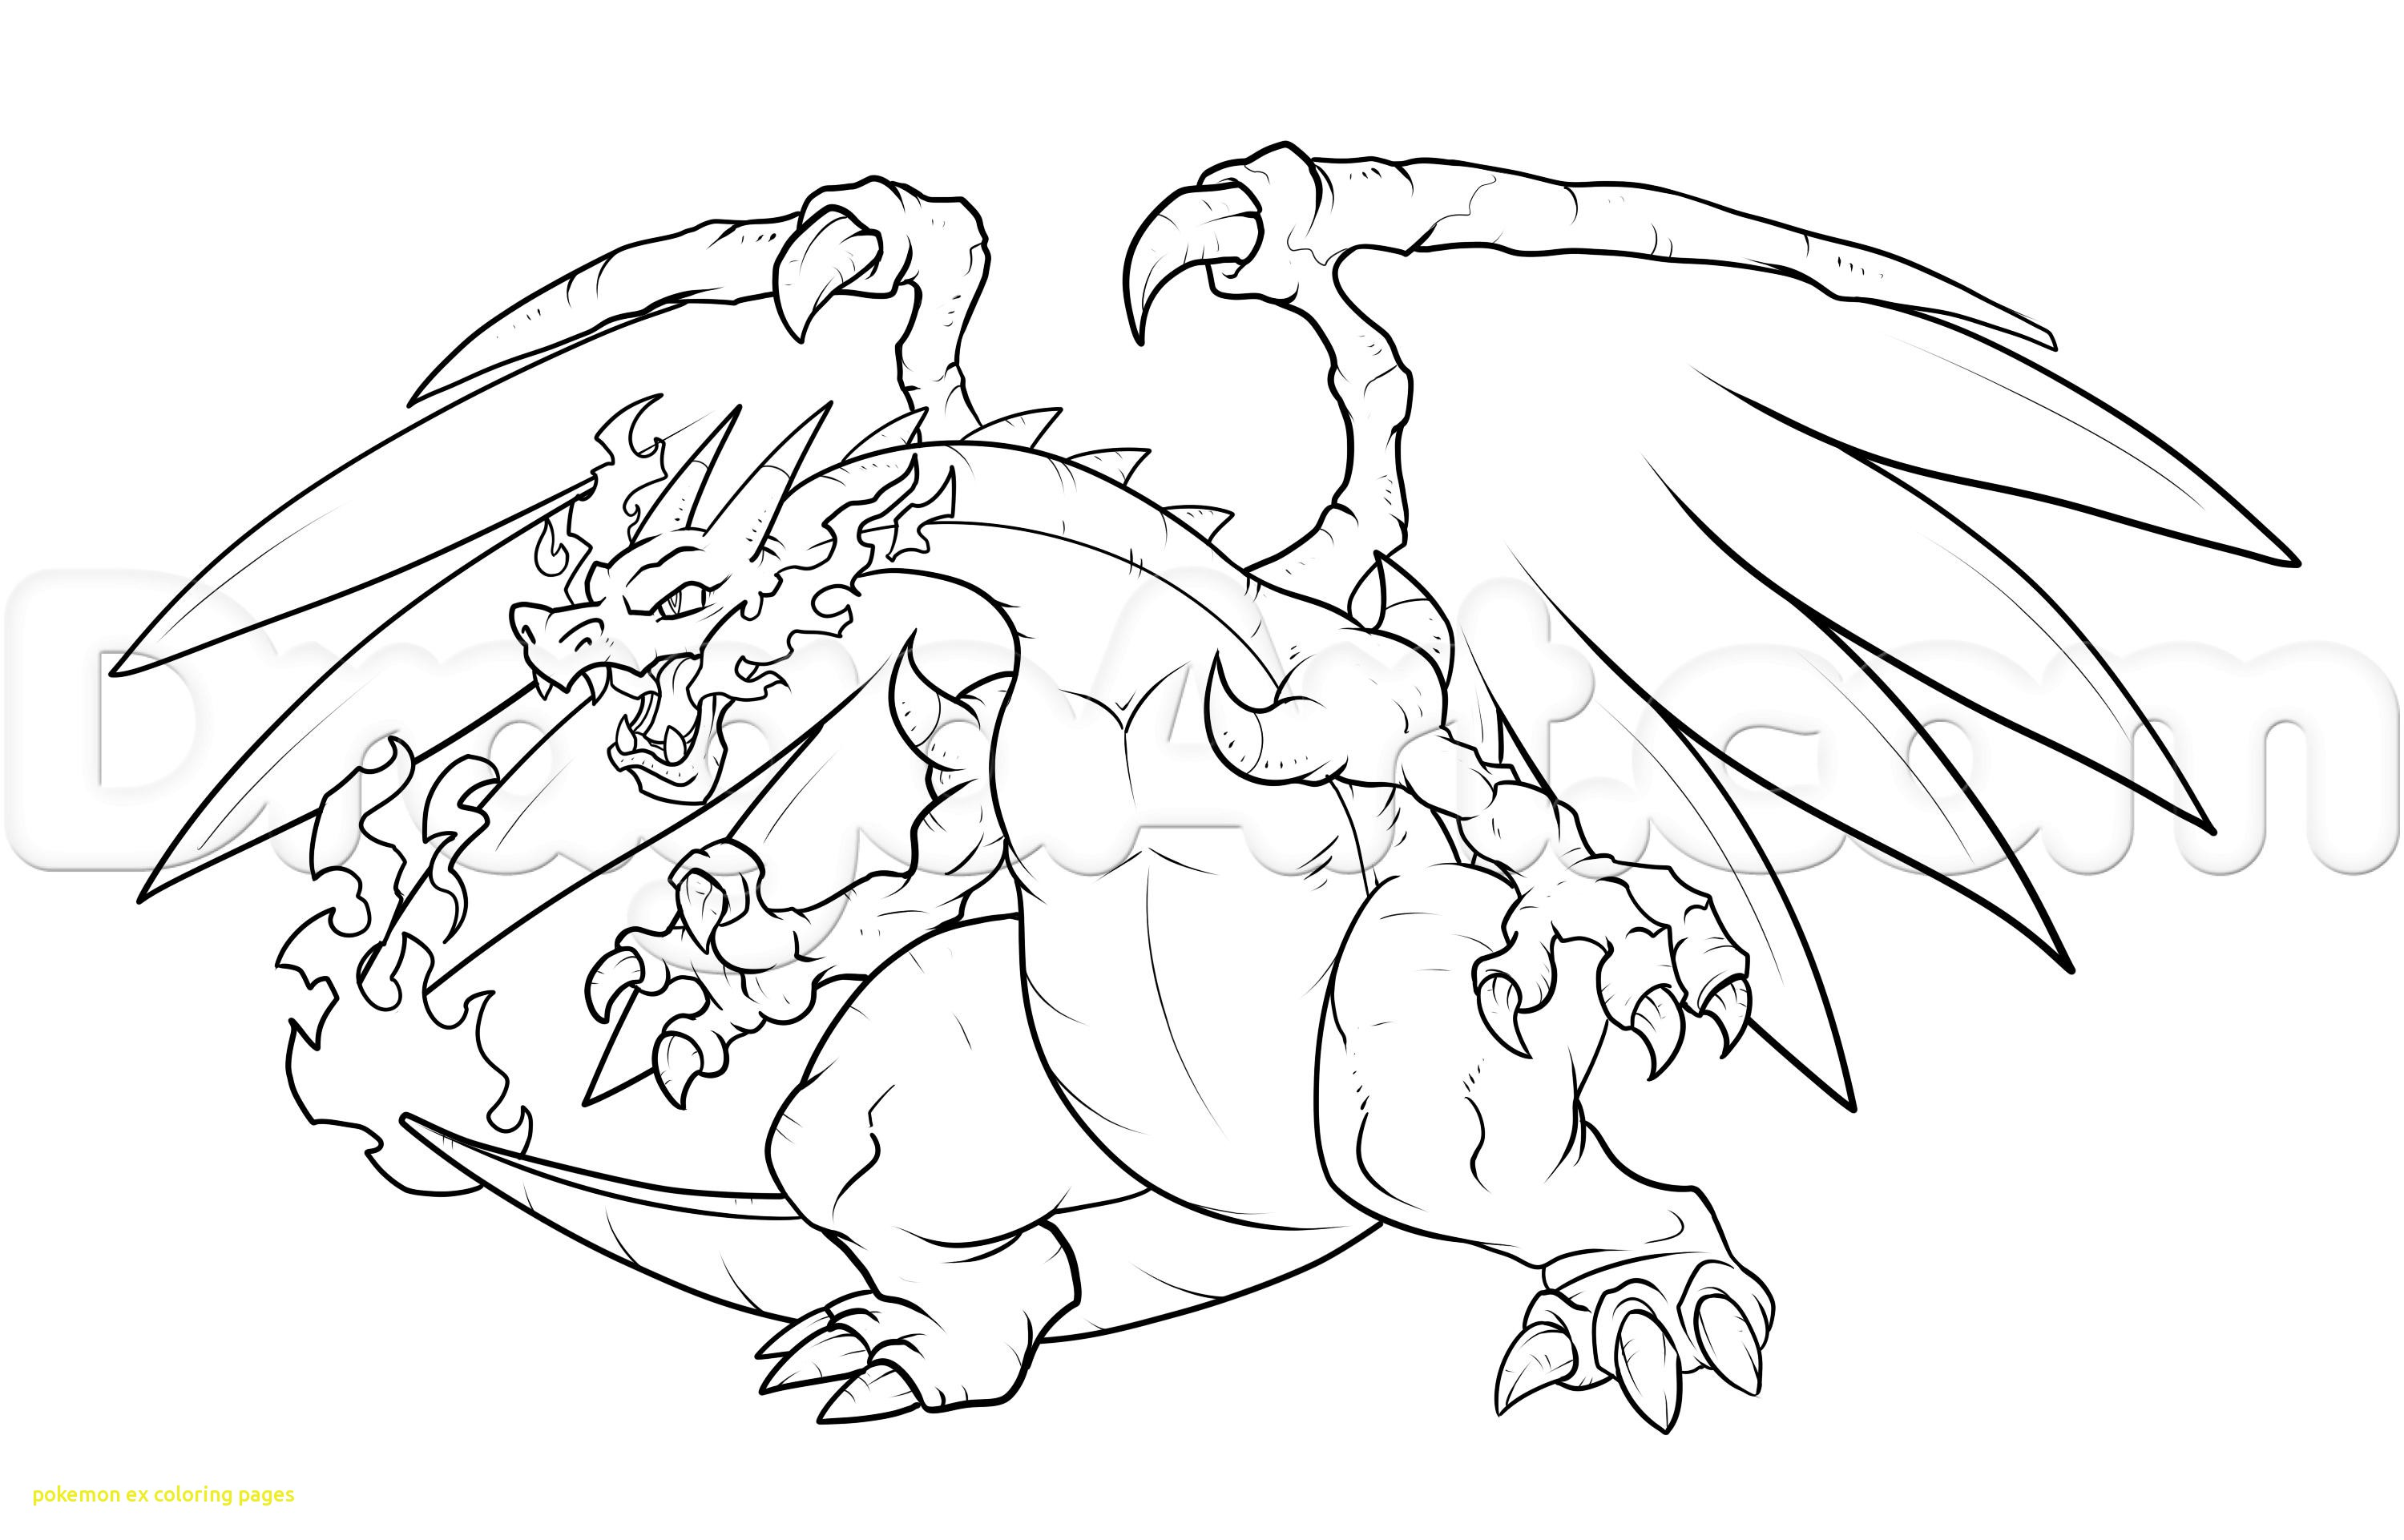 Kleurplaten Pokemon Rayquaza.Pokemon Groudon Coloring Pages At Getdrawings Com Free For